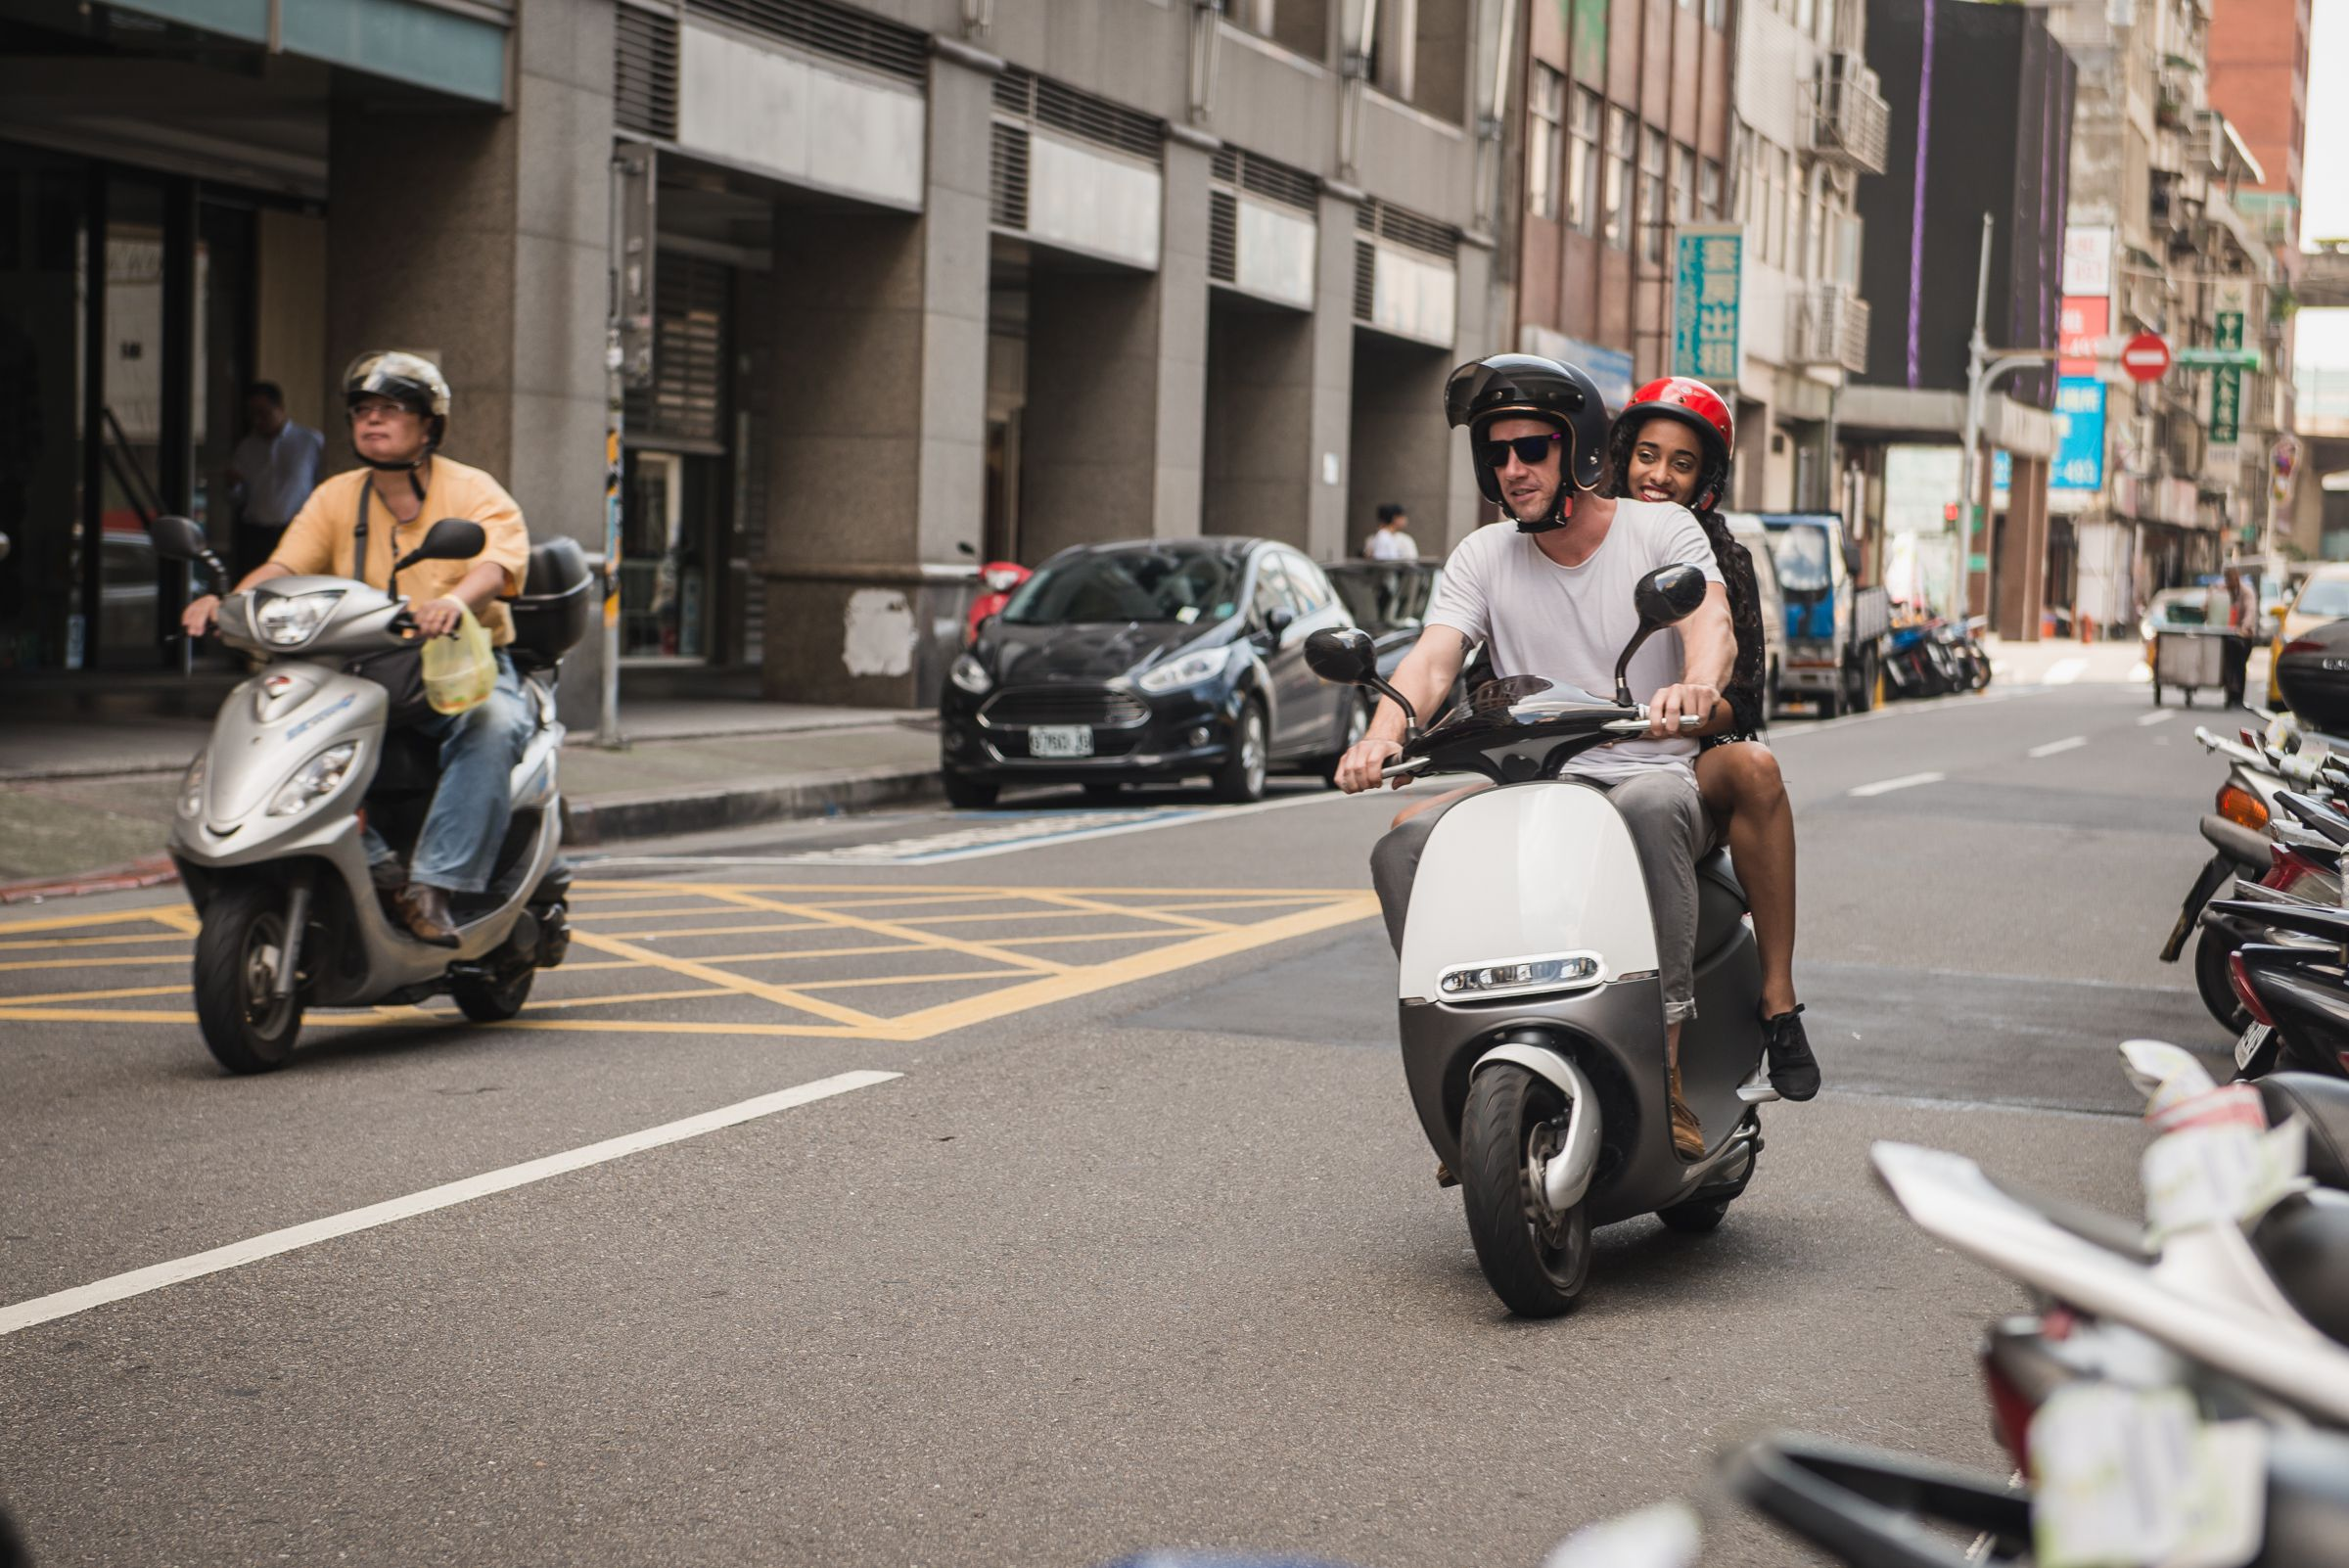 gogoro 39 s awesome electric scooter is coming to europe next year amsterdam first the verge. Black Bedroom Furniture Sets. Home Design Ideas